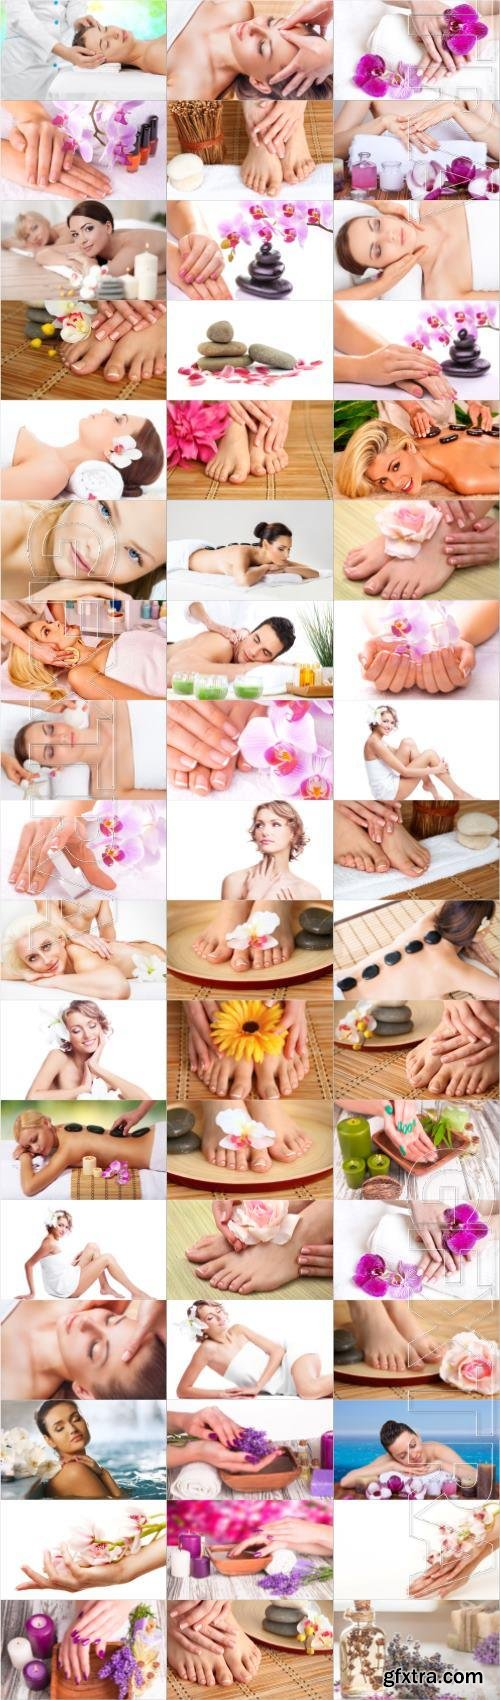 Girls in the spa salon large selection of stock photos